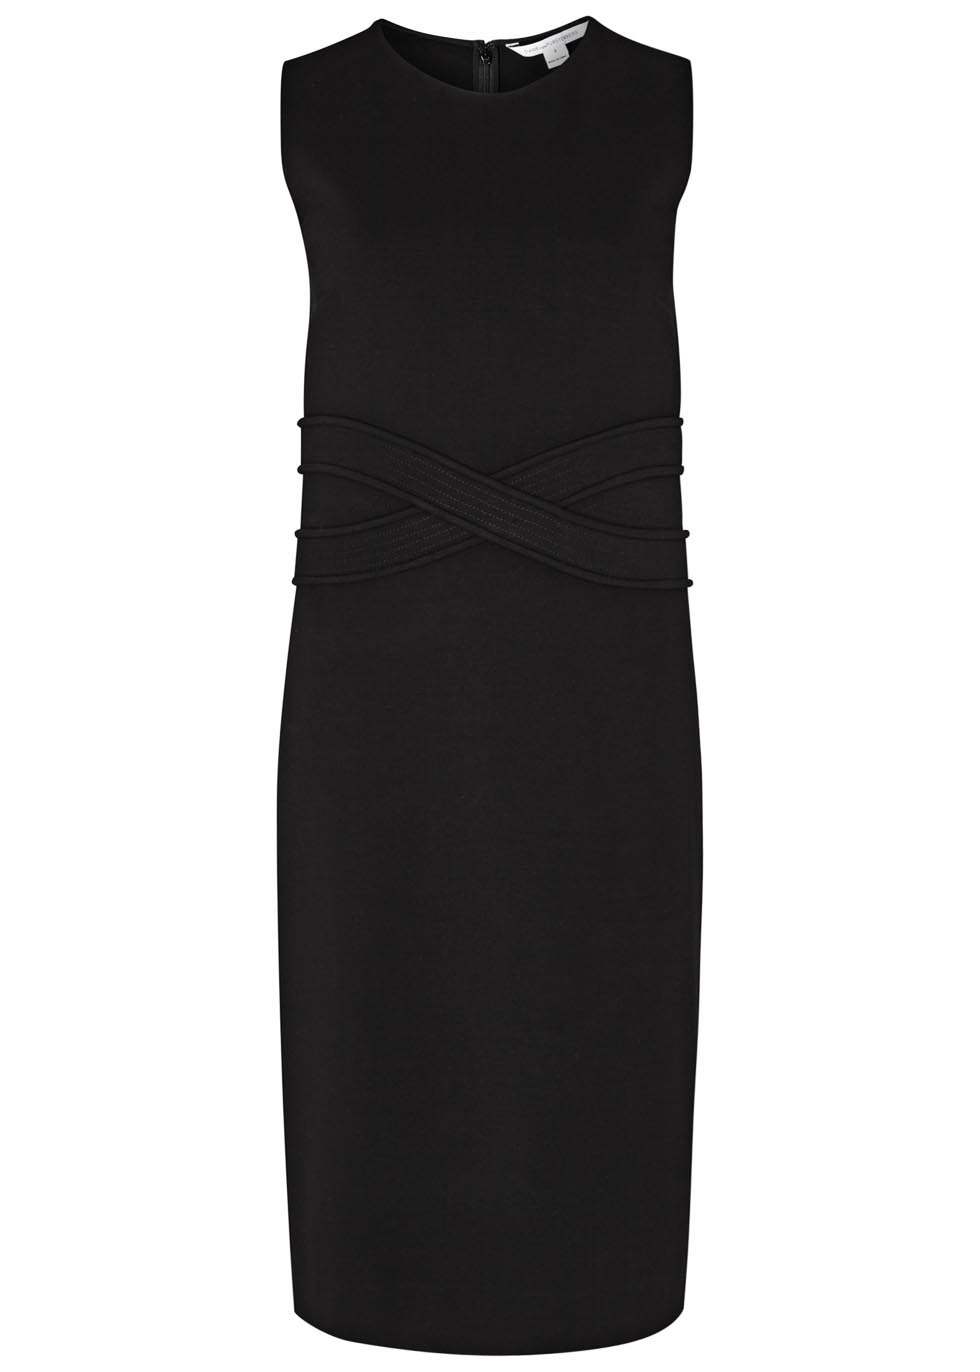 Evita Black Scuba Shift Dress - style: shift; pattern: plain; sleeve style: sleeveless; predominant colour: black; occasions: evening; length: just above the knee; fit: body skimming; neckline: crew; sleeve length: sleeveless; pattern type: fabric; texture group: other - light to midweight; fibres: viscose/rayon - mix; season: s/s 2016; wardrobe: event